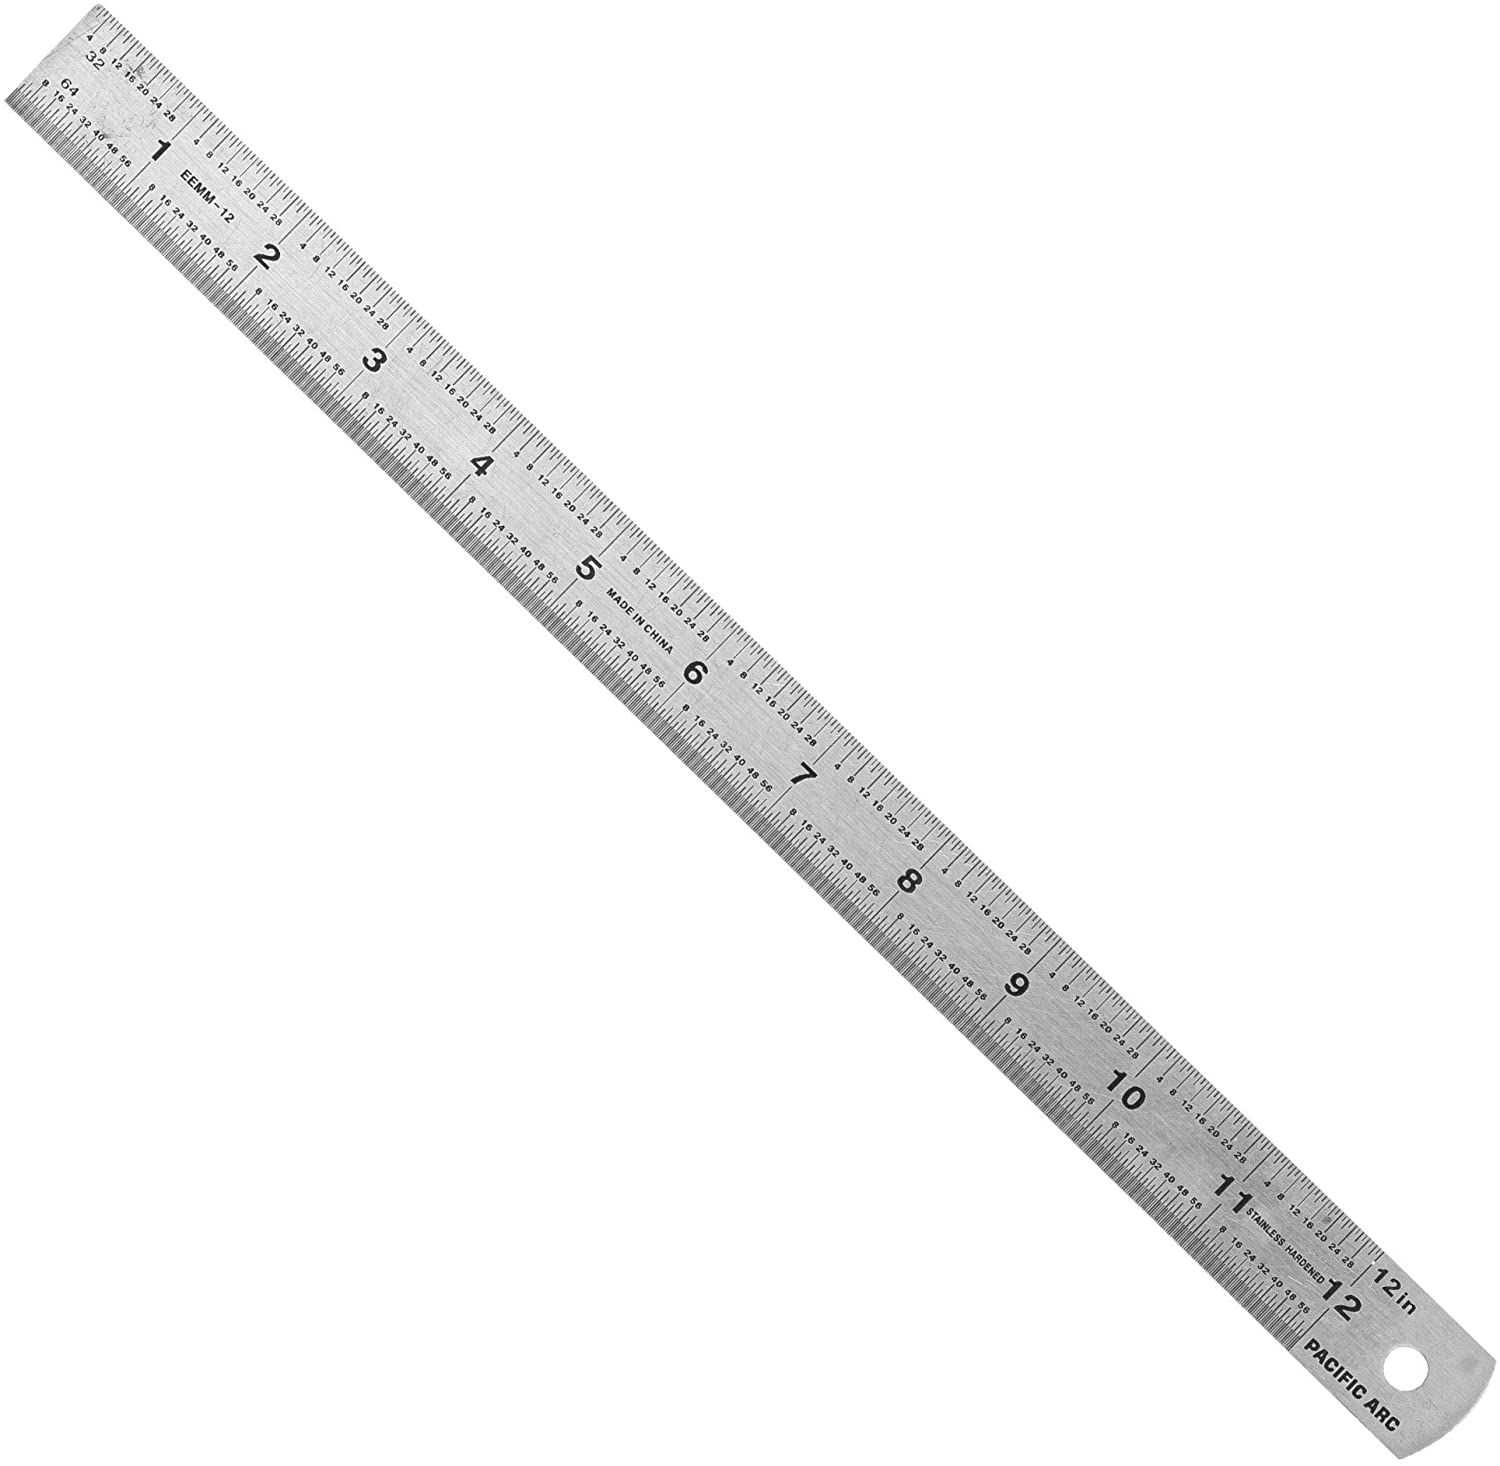 Pacific Arc Stainless Steel Ruler Inch and Metric, with 32nd and 64th Graduations, 12 Inches